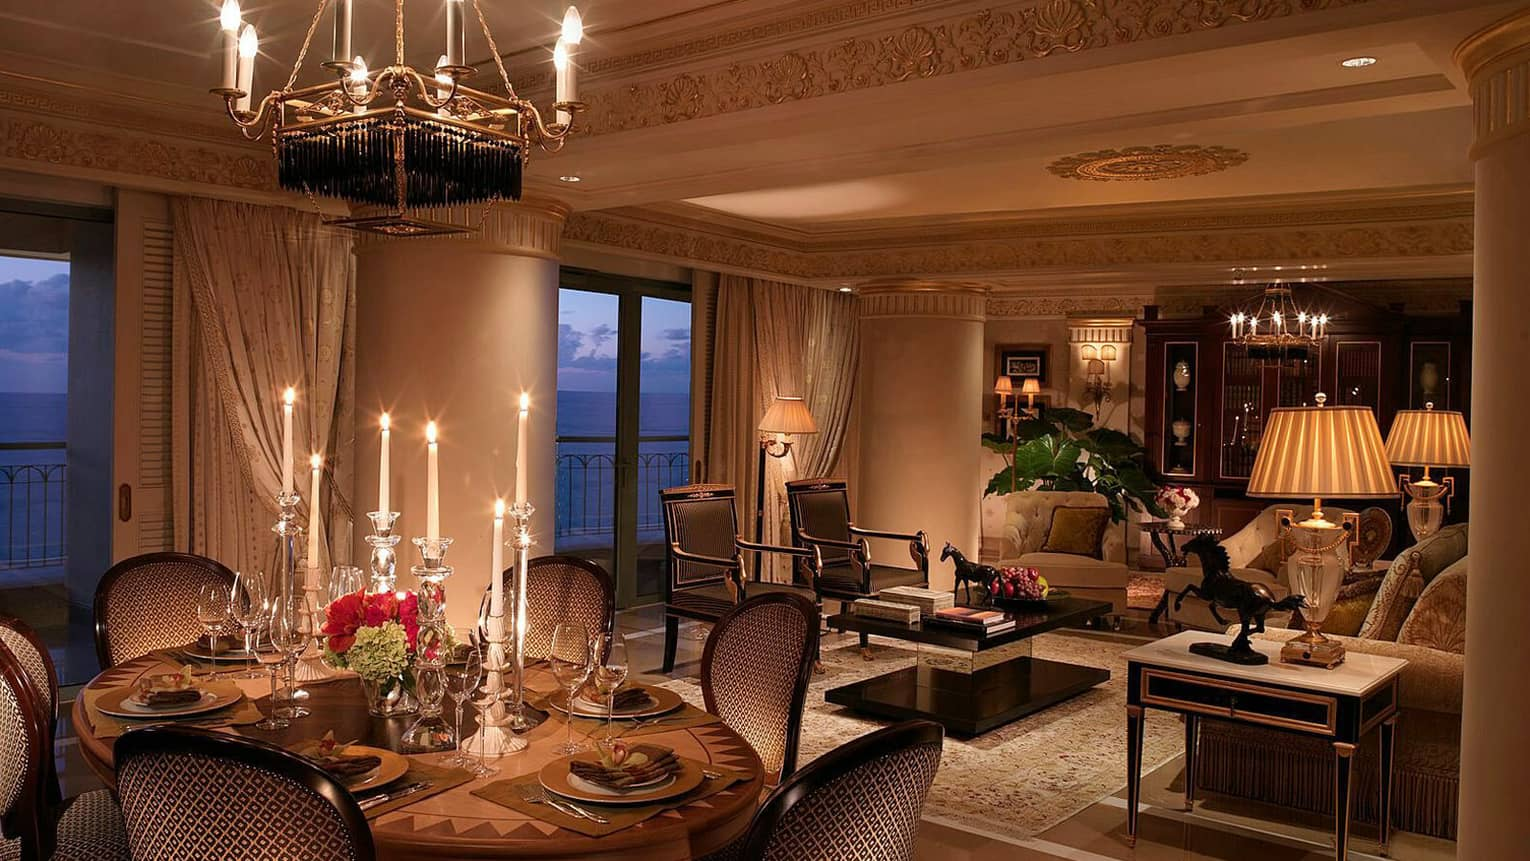 Dimly-lit Royal Suite dining room at night with tall candles beside seating area with sofas, horse statues, sea view